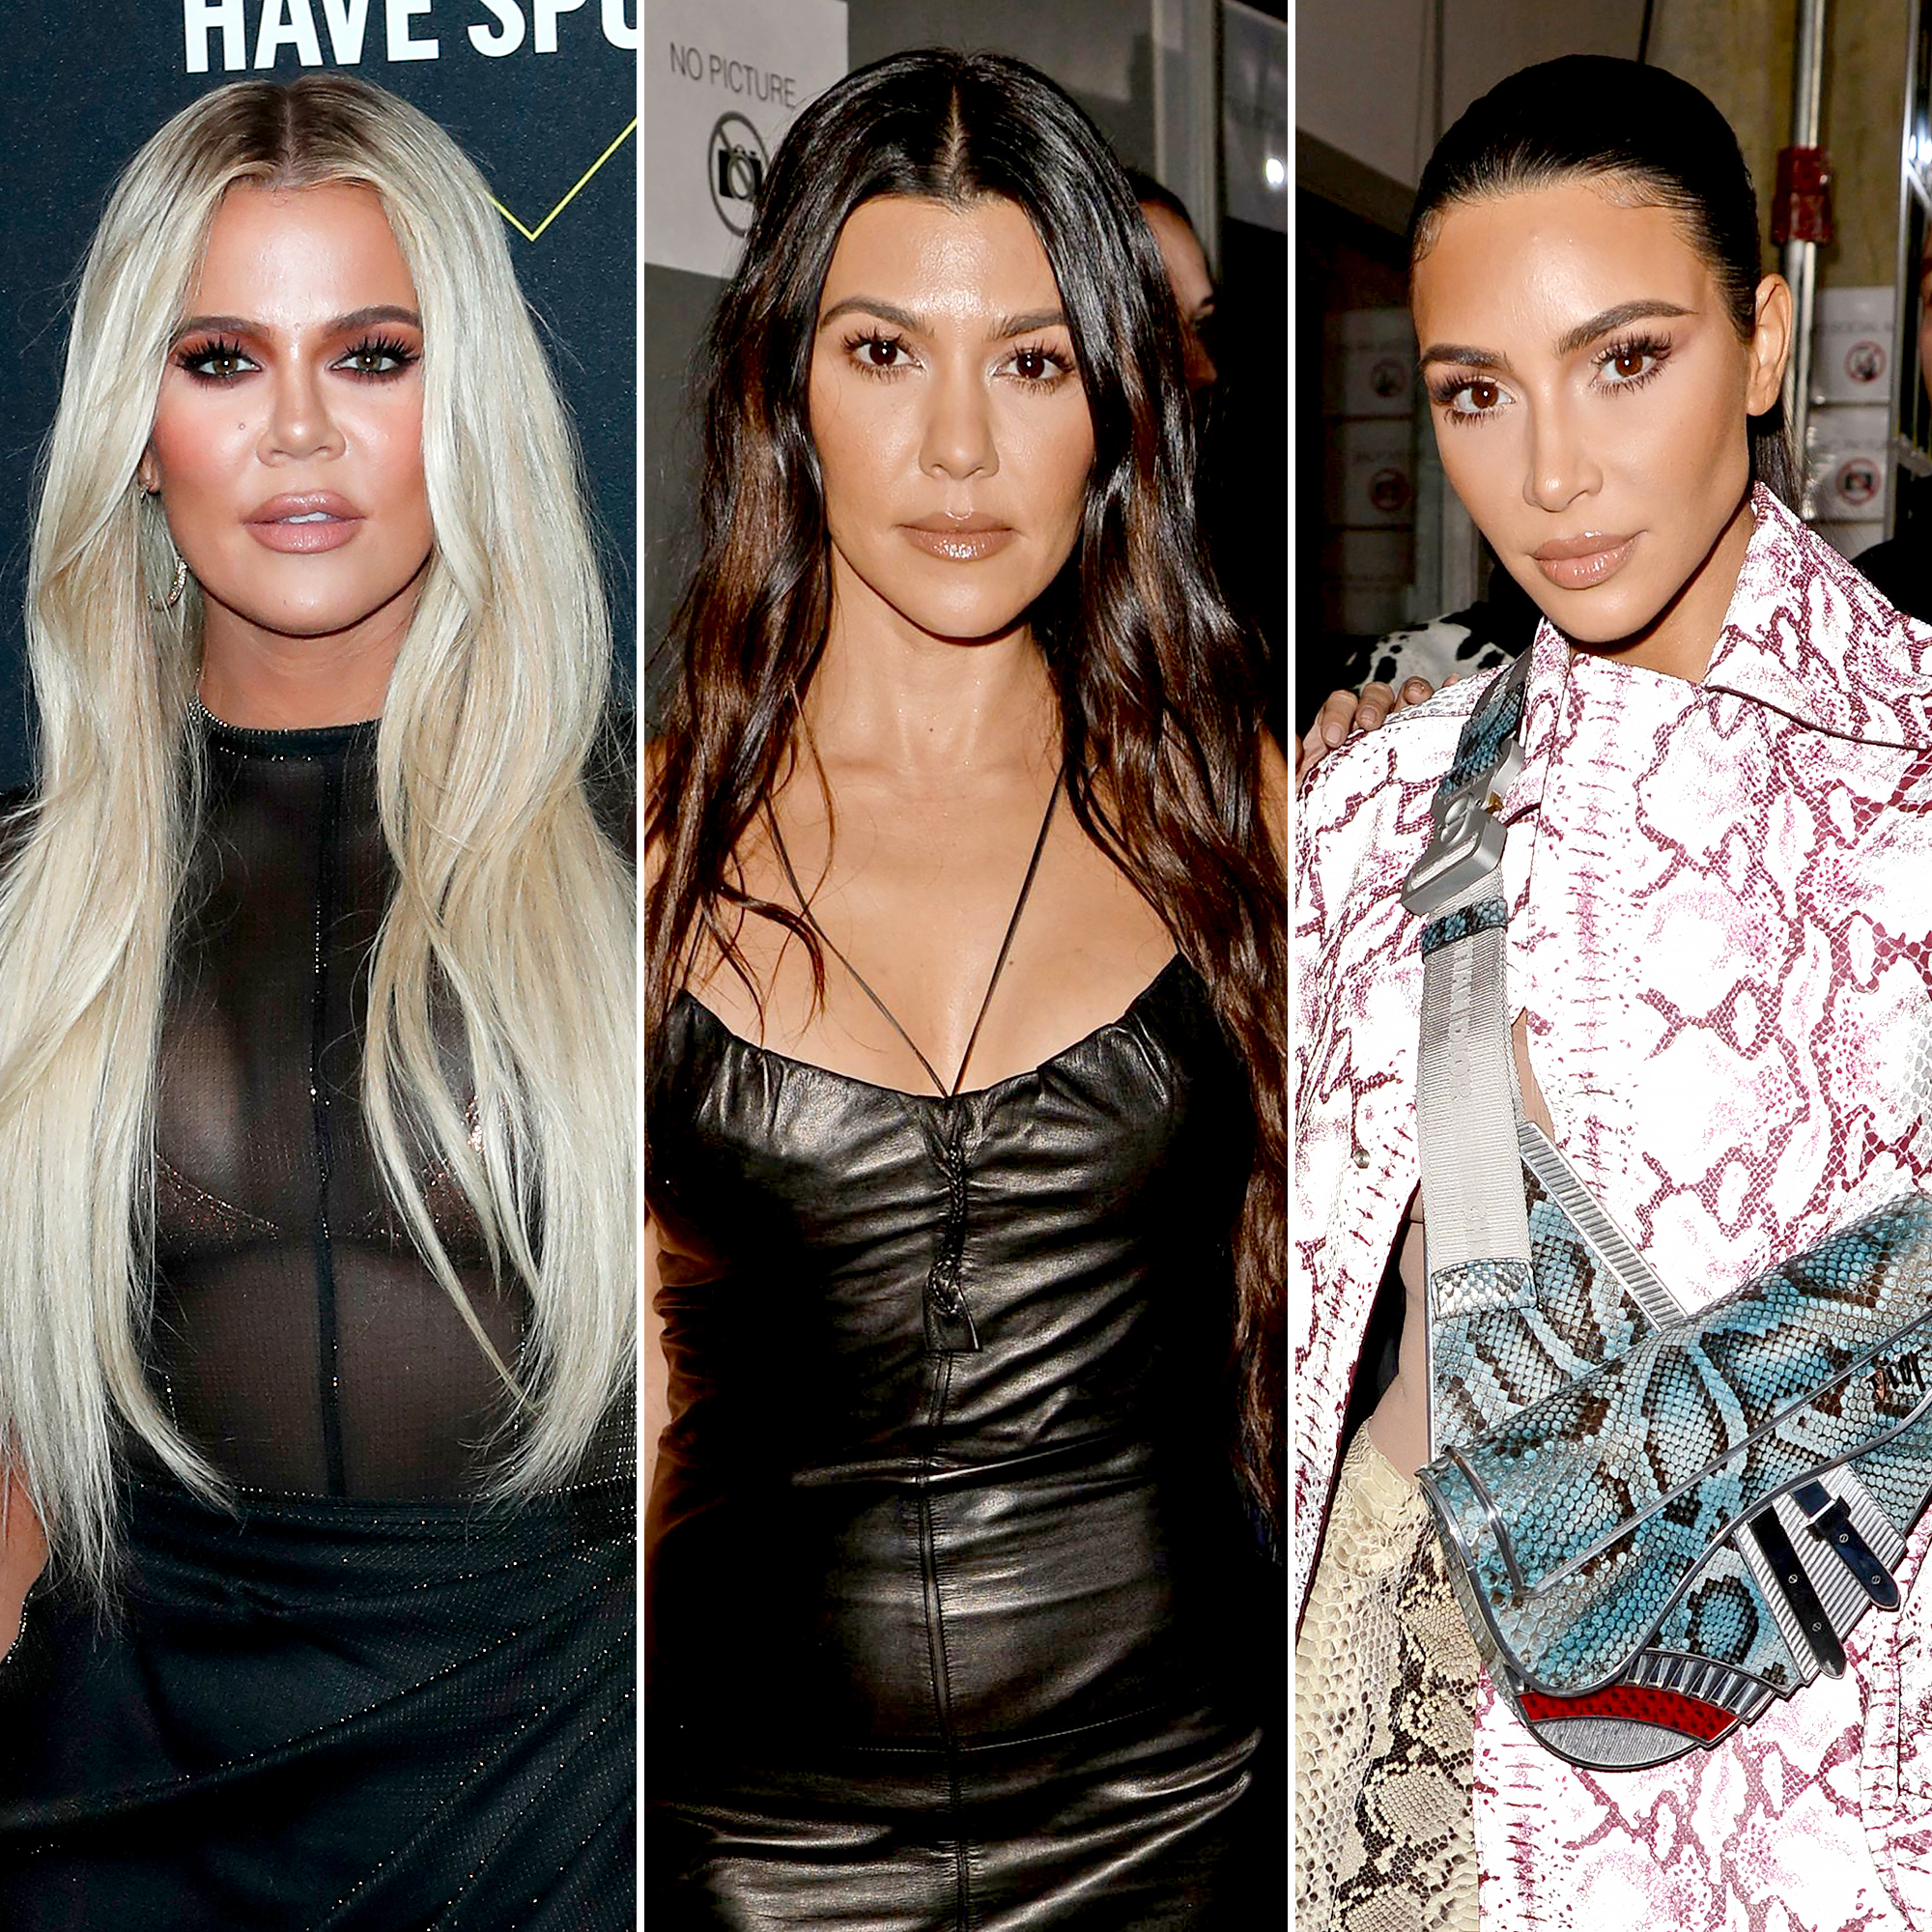 Khloe Kardashian Says She Would Demolish Kourtney If She Fought Her Instead of Kim